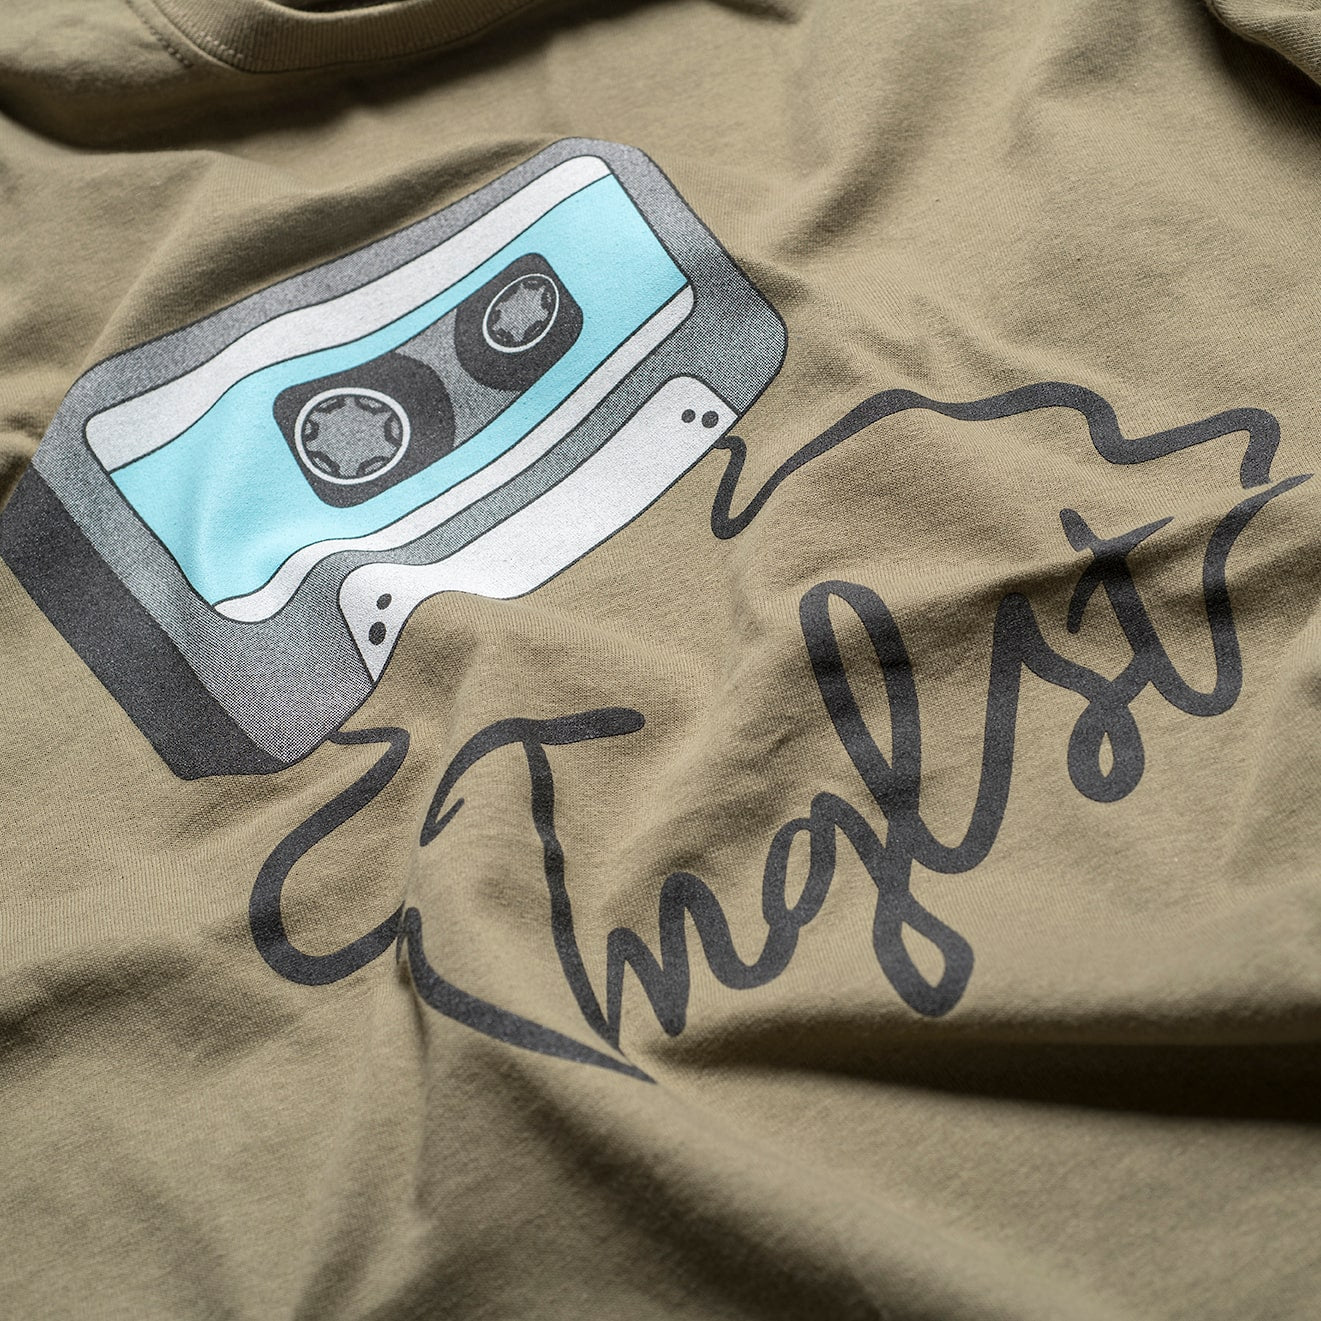 Close up of Prairie Mixtape T-Shirt from Jnglst Clothing